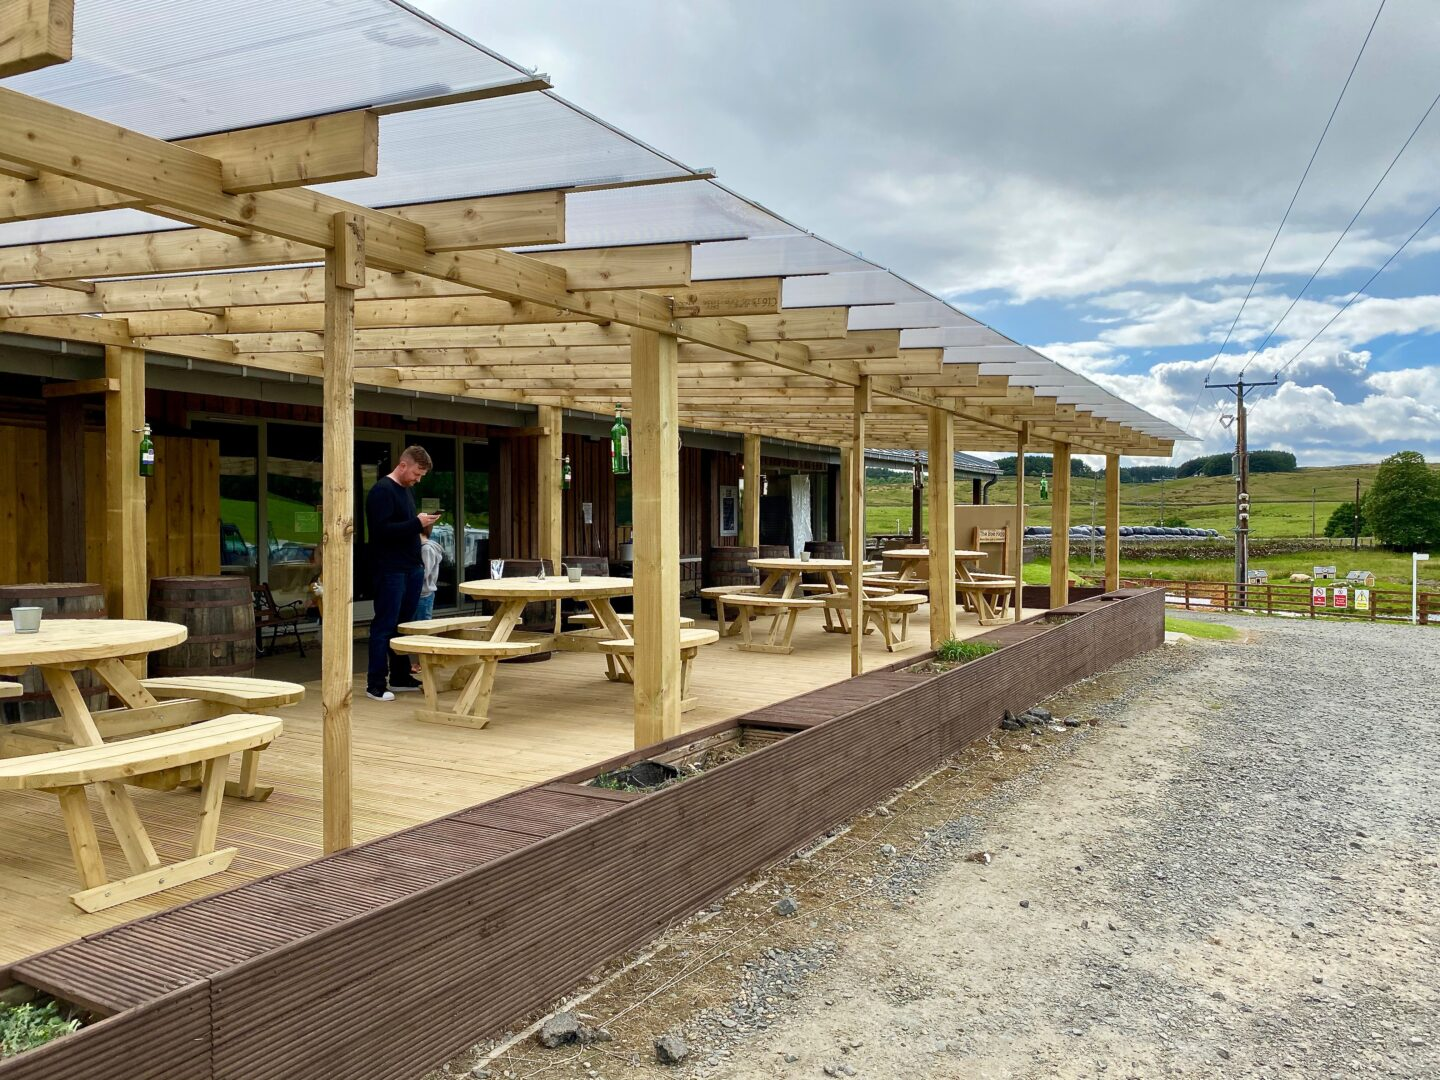 Outdoor seating at the Boe Rigg restaurant - 4 picnic tables under a pergola